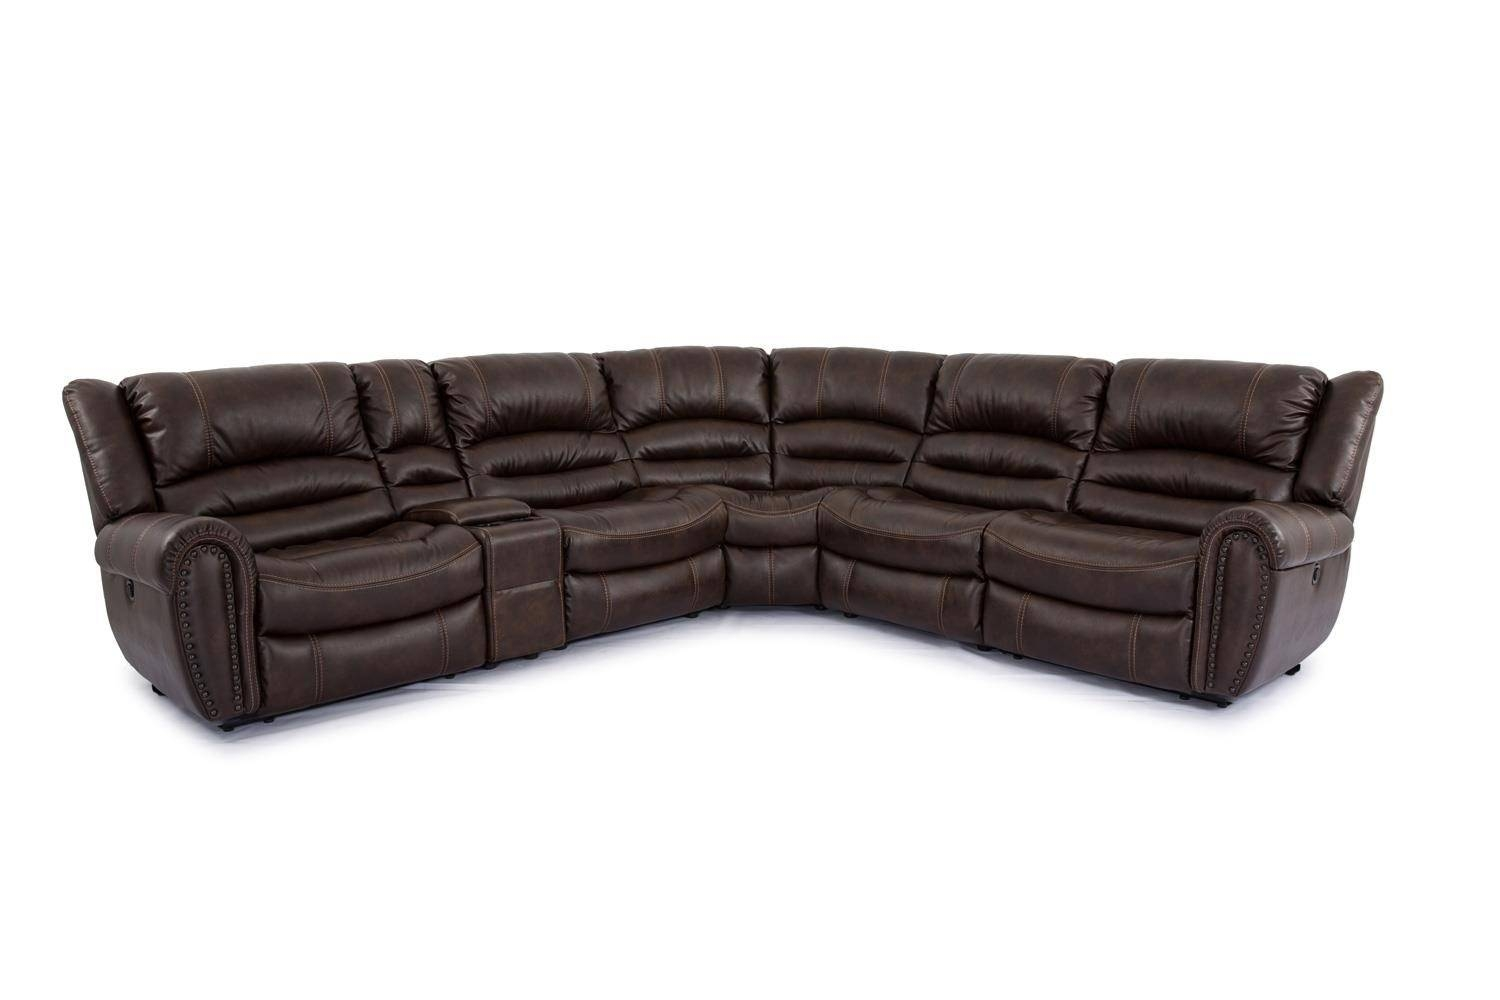 2018 Latest Broyhill Sectional Sofa